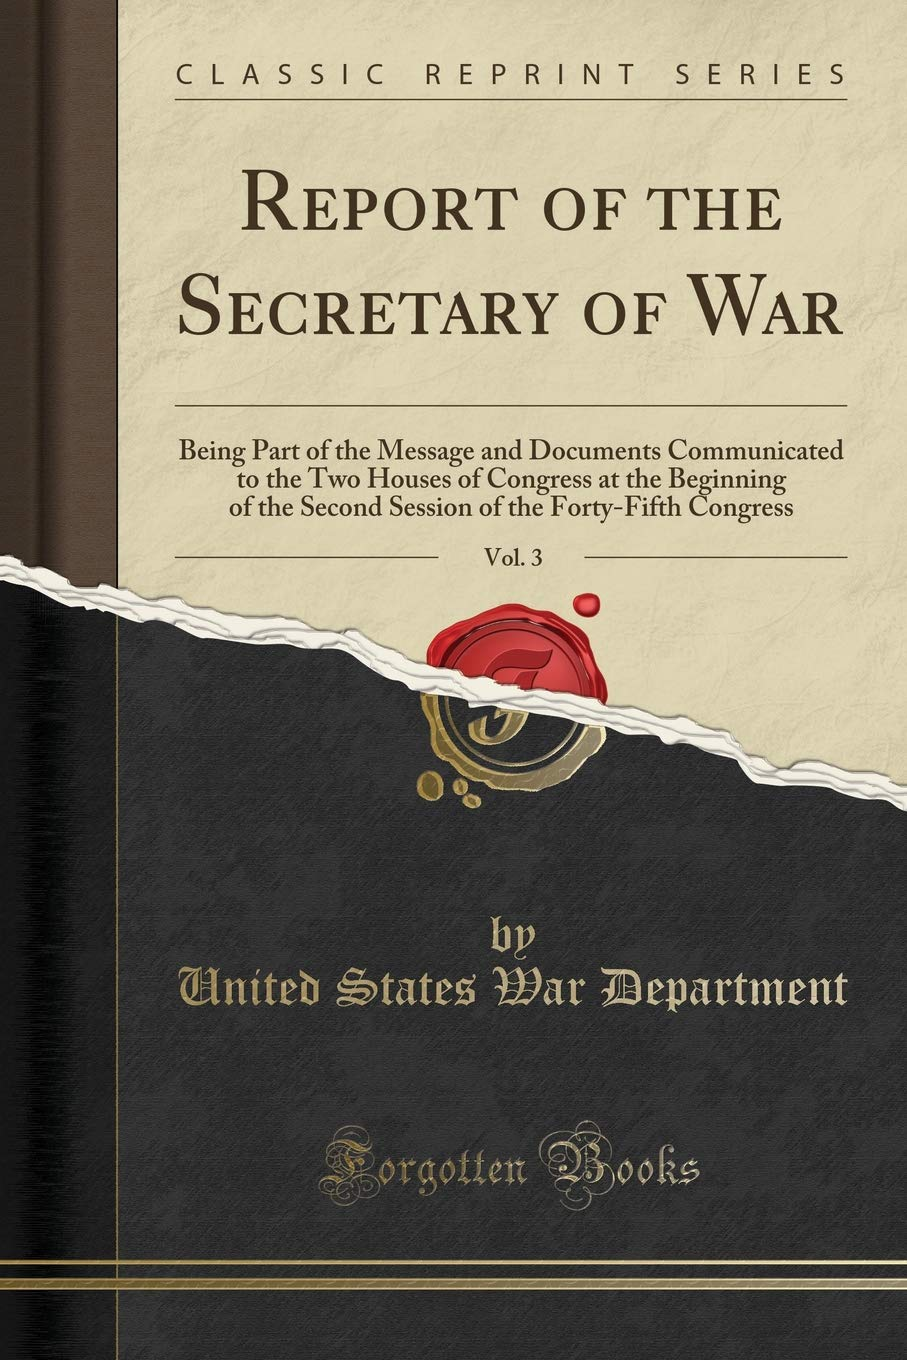 Report of the Secretary of War, Vol. 3: Being Part of the Message and Documents Communicated to the Two Houses of Congress at the Beginning of the ... of the Forty-Fifth Congress (Classic Reprint) pdf